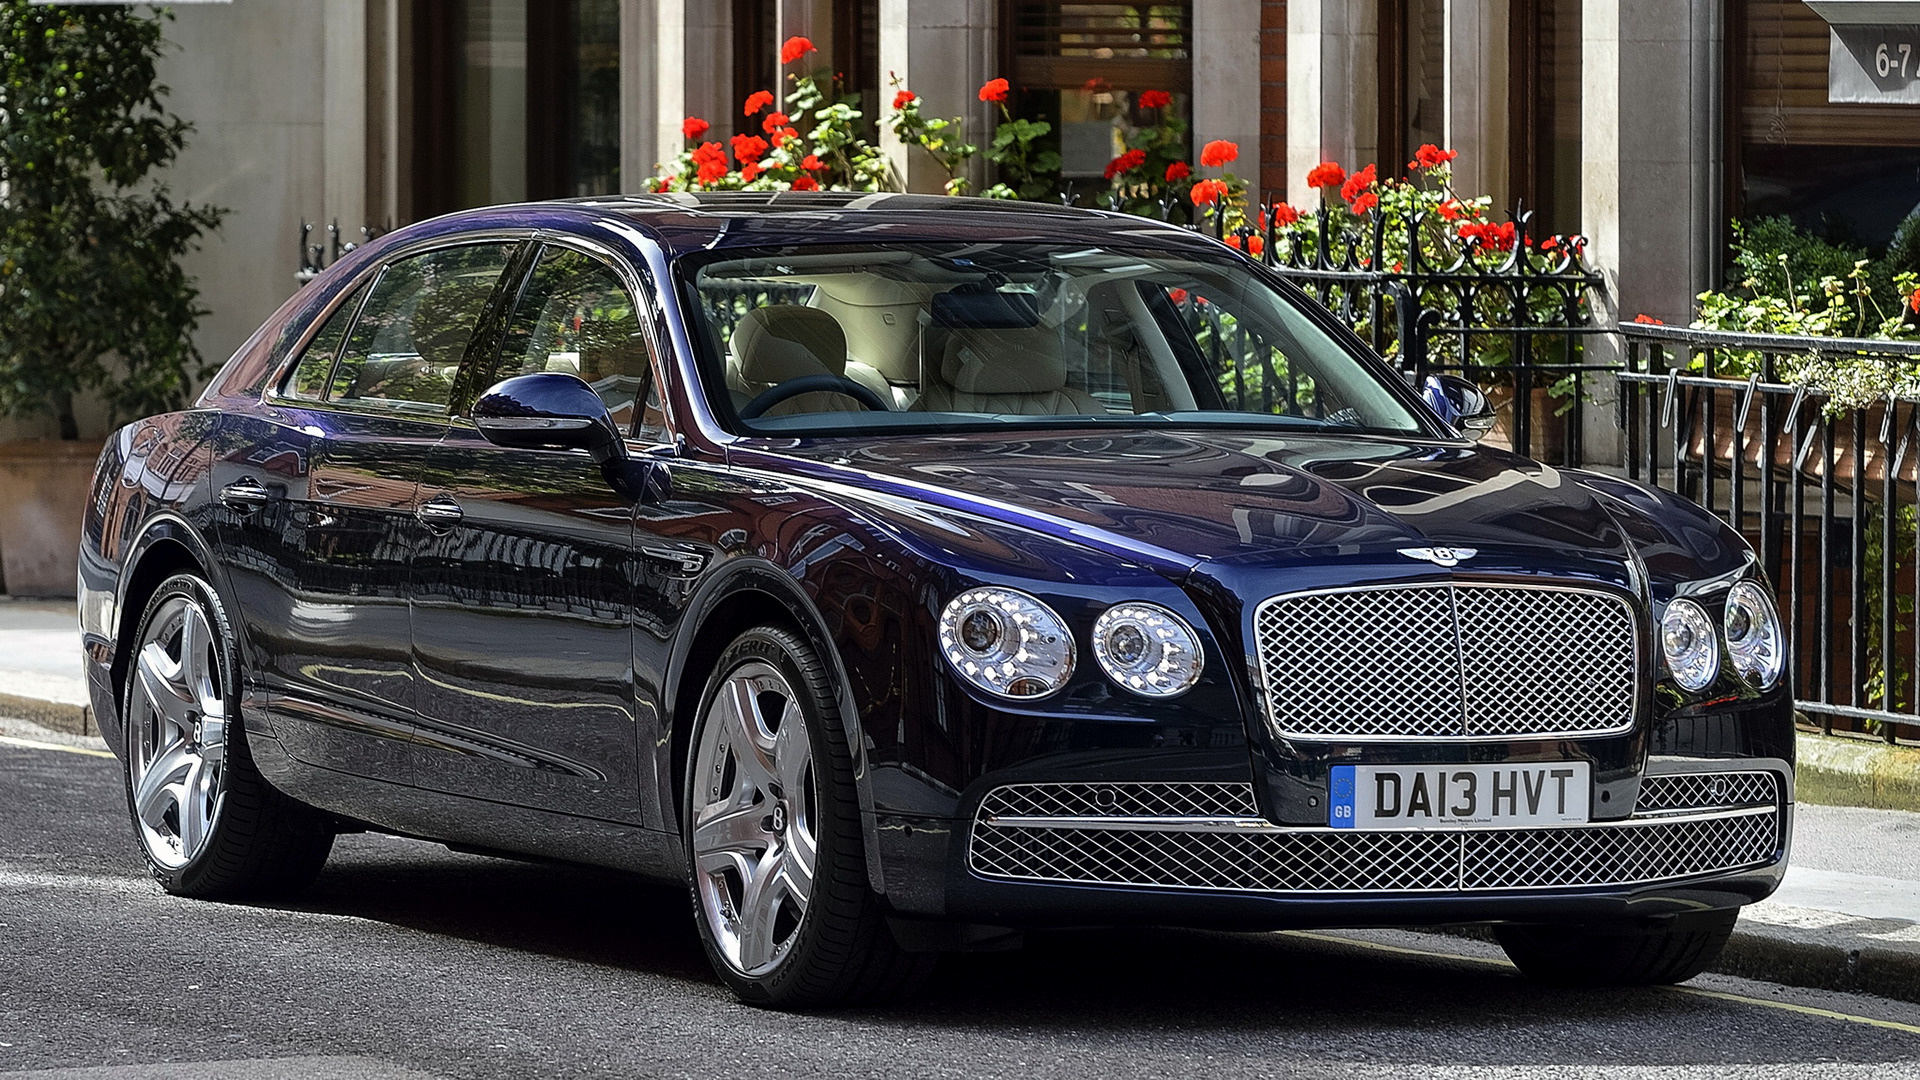 Bentley Flying Spur >> 2013 Bentley Flying Spur (UK) - Wallpapers and HD Images ...